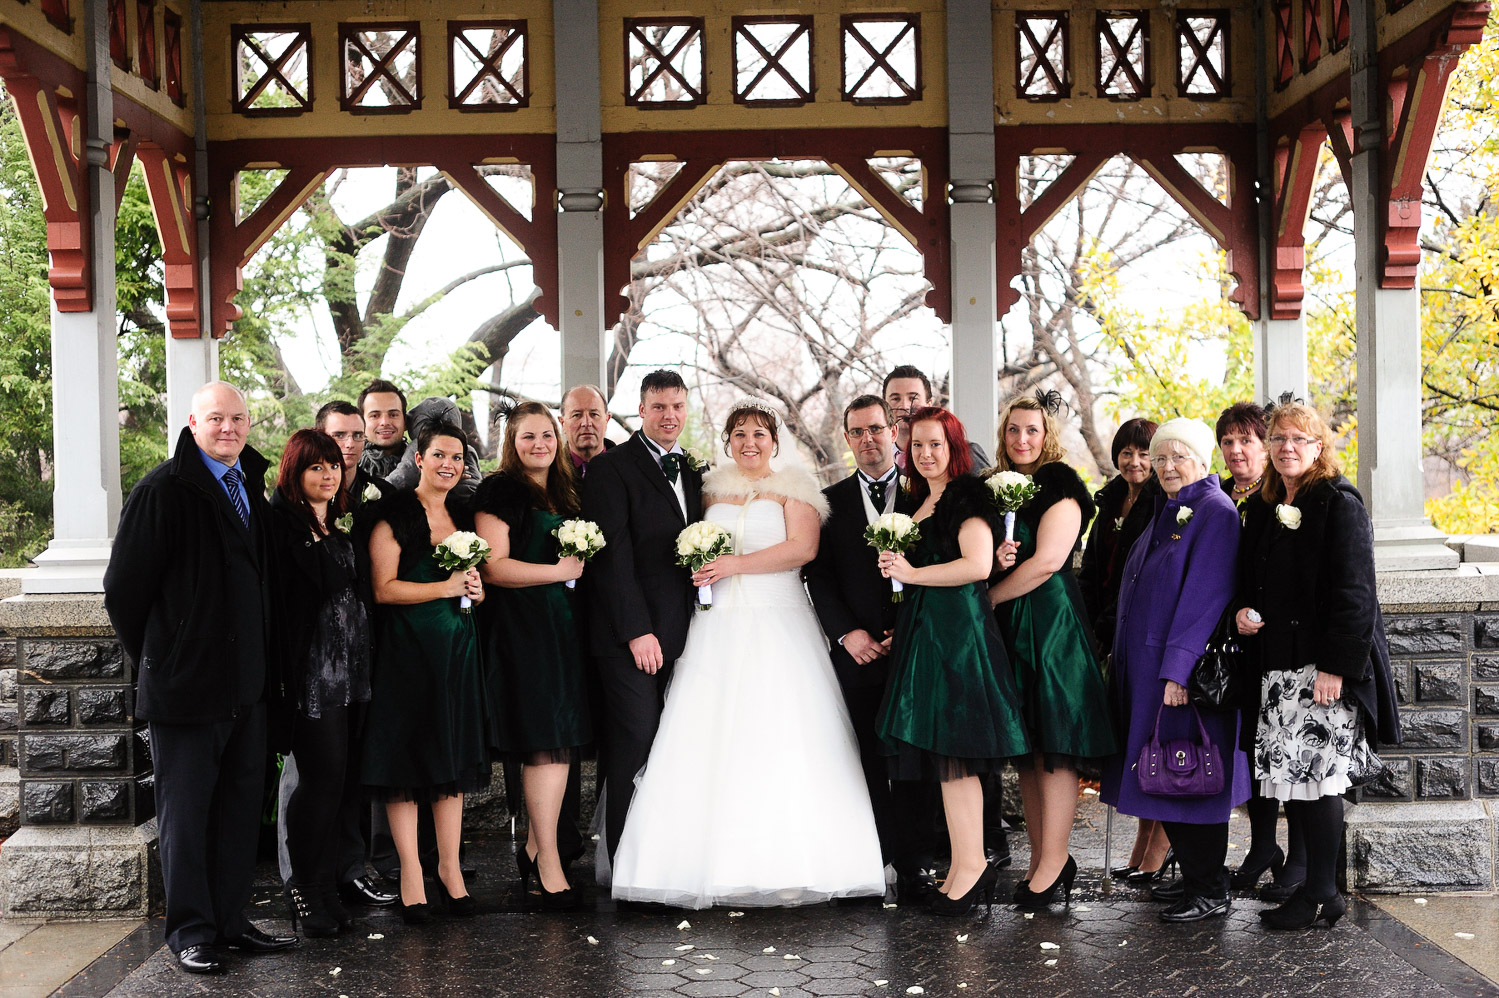 nyc belvedere castle mini wedding photo of guests by wendy g photography